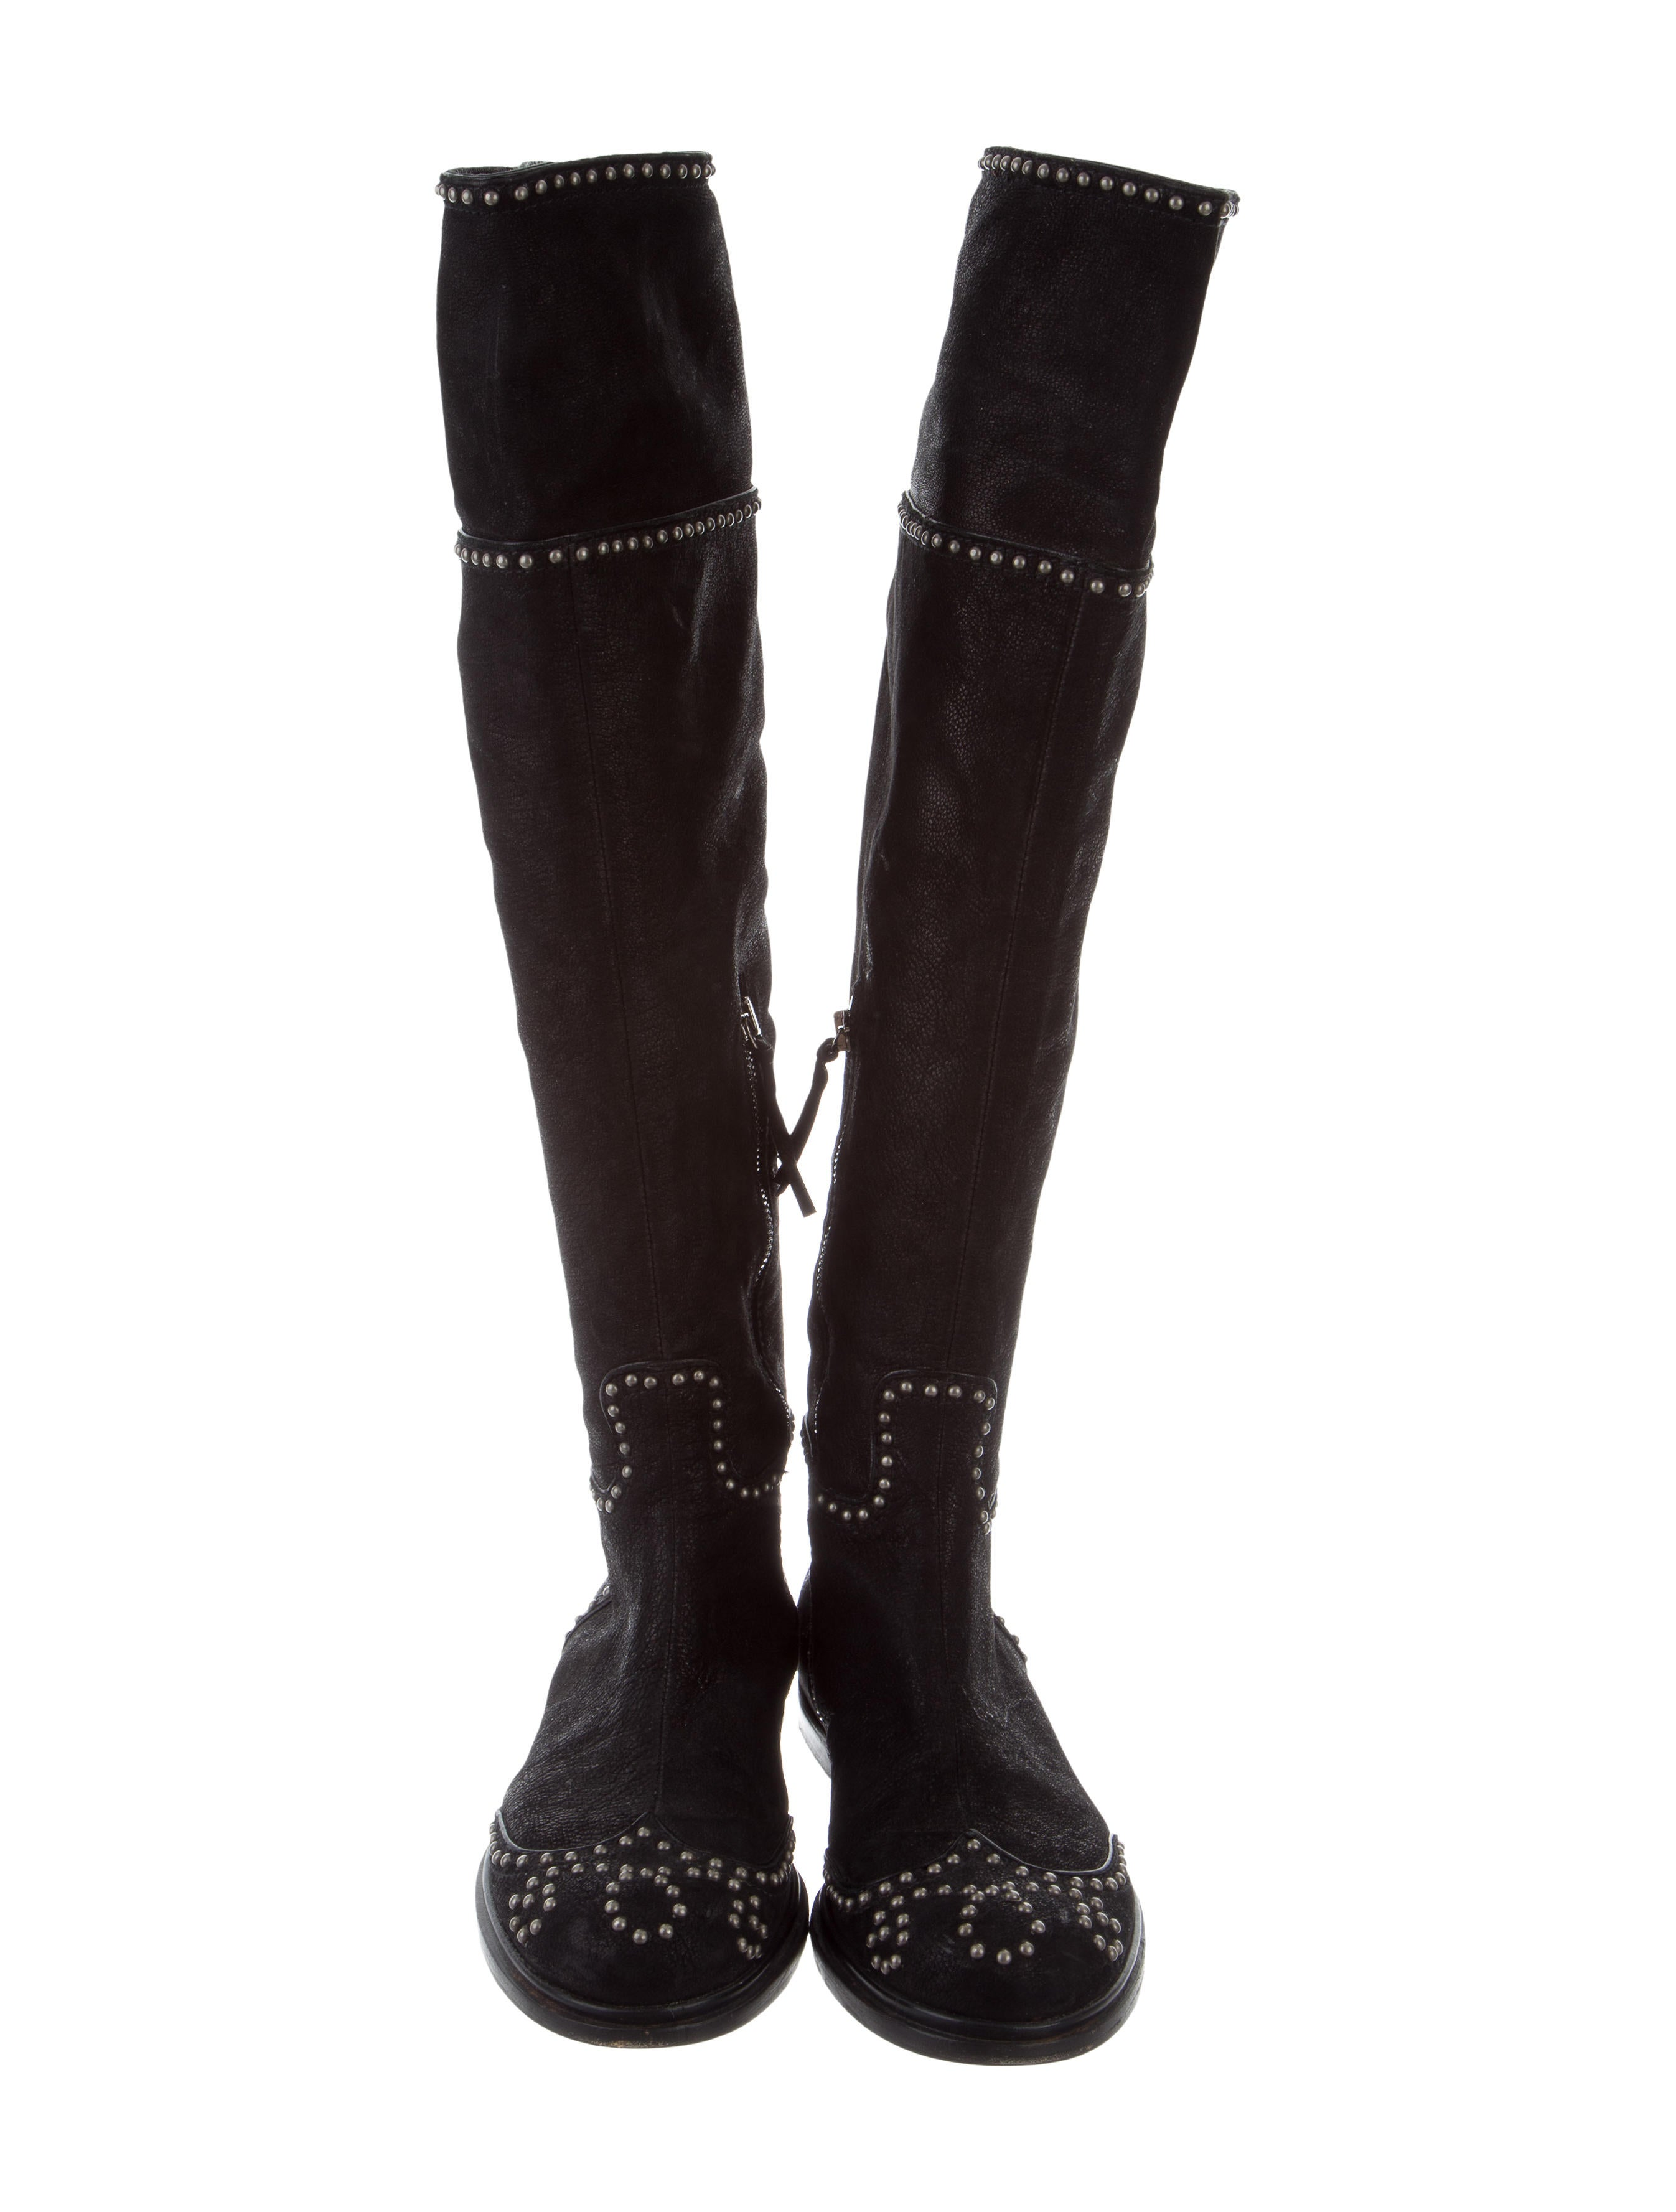 huge surprise online Miu Miu Stud-Embellished Over-The-Knee Boots outlet explore clearance cheapest price buy cheap 100% original big discount for sale CV8yS3Ad